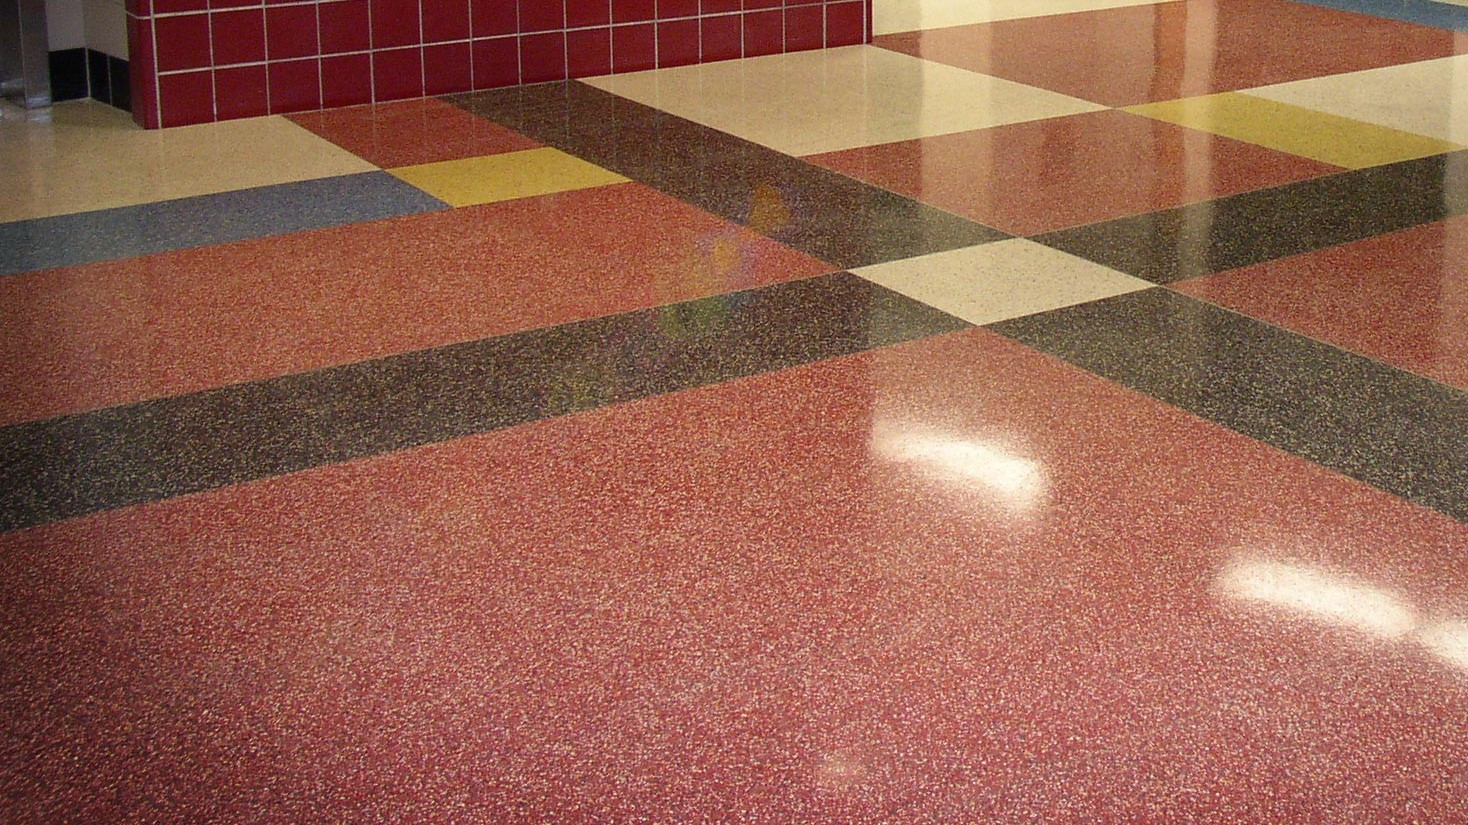 Restore Your Terrazzo Floors Help The Environment And